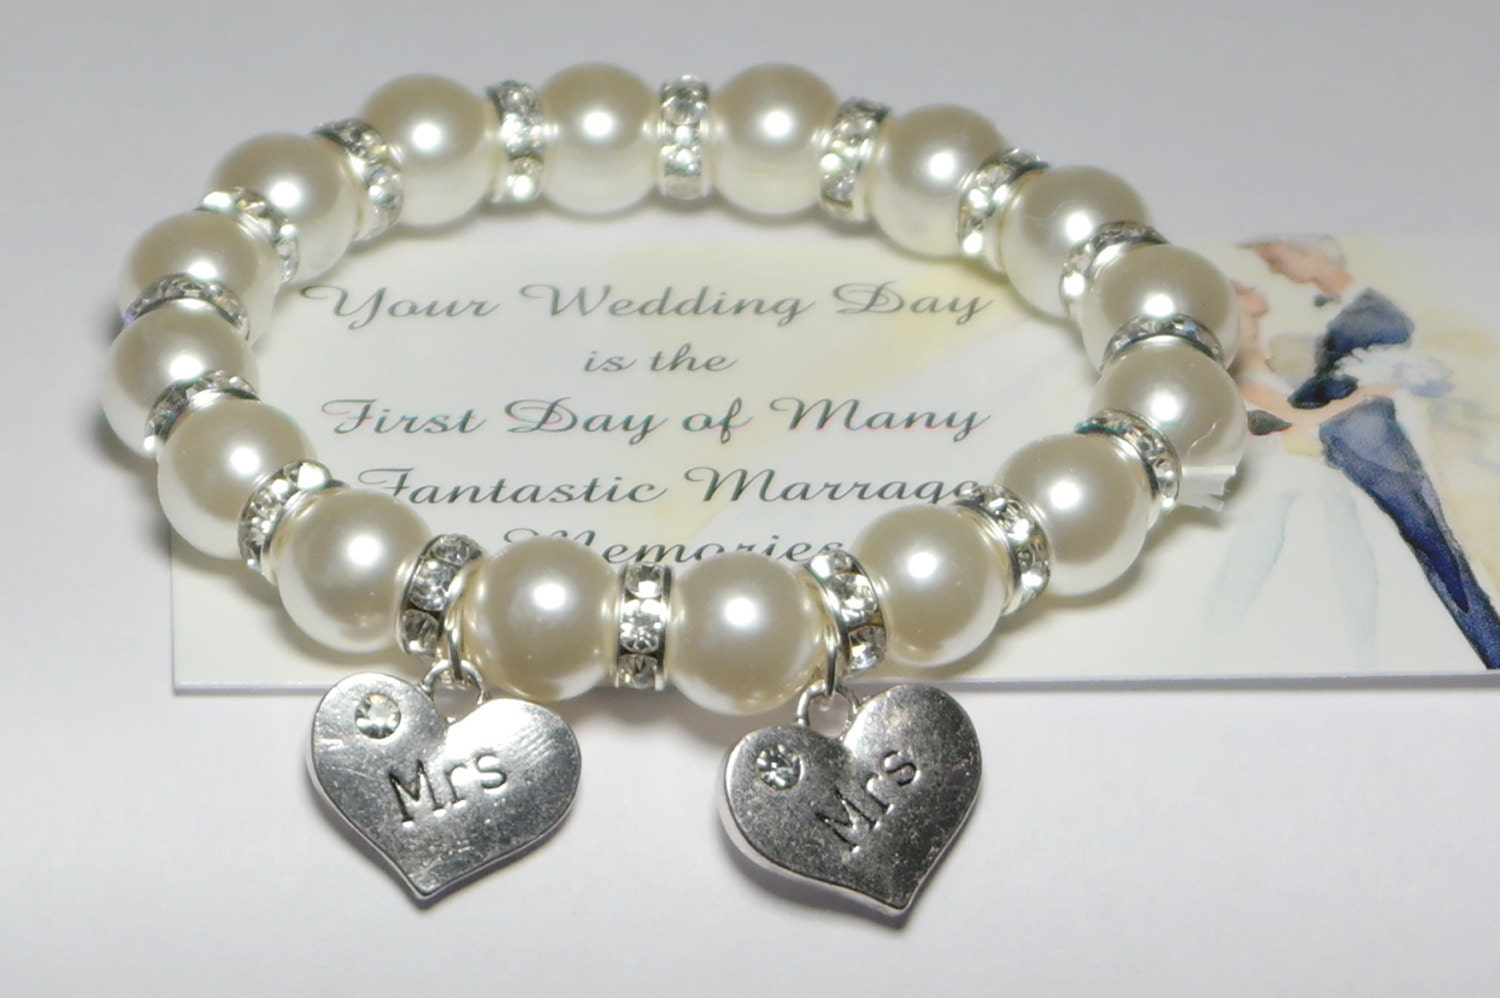 What To Get A Gay Couple For A Wedding Gift: Mrs And Mrs Bracelet Lesbian Couple Lesbian Wedding Gift